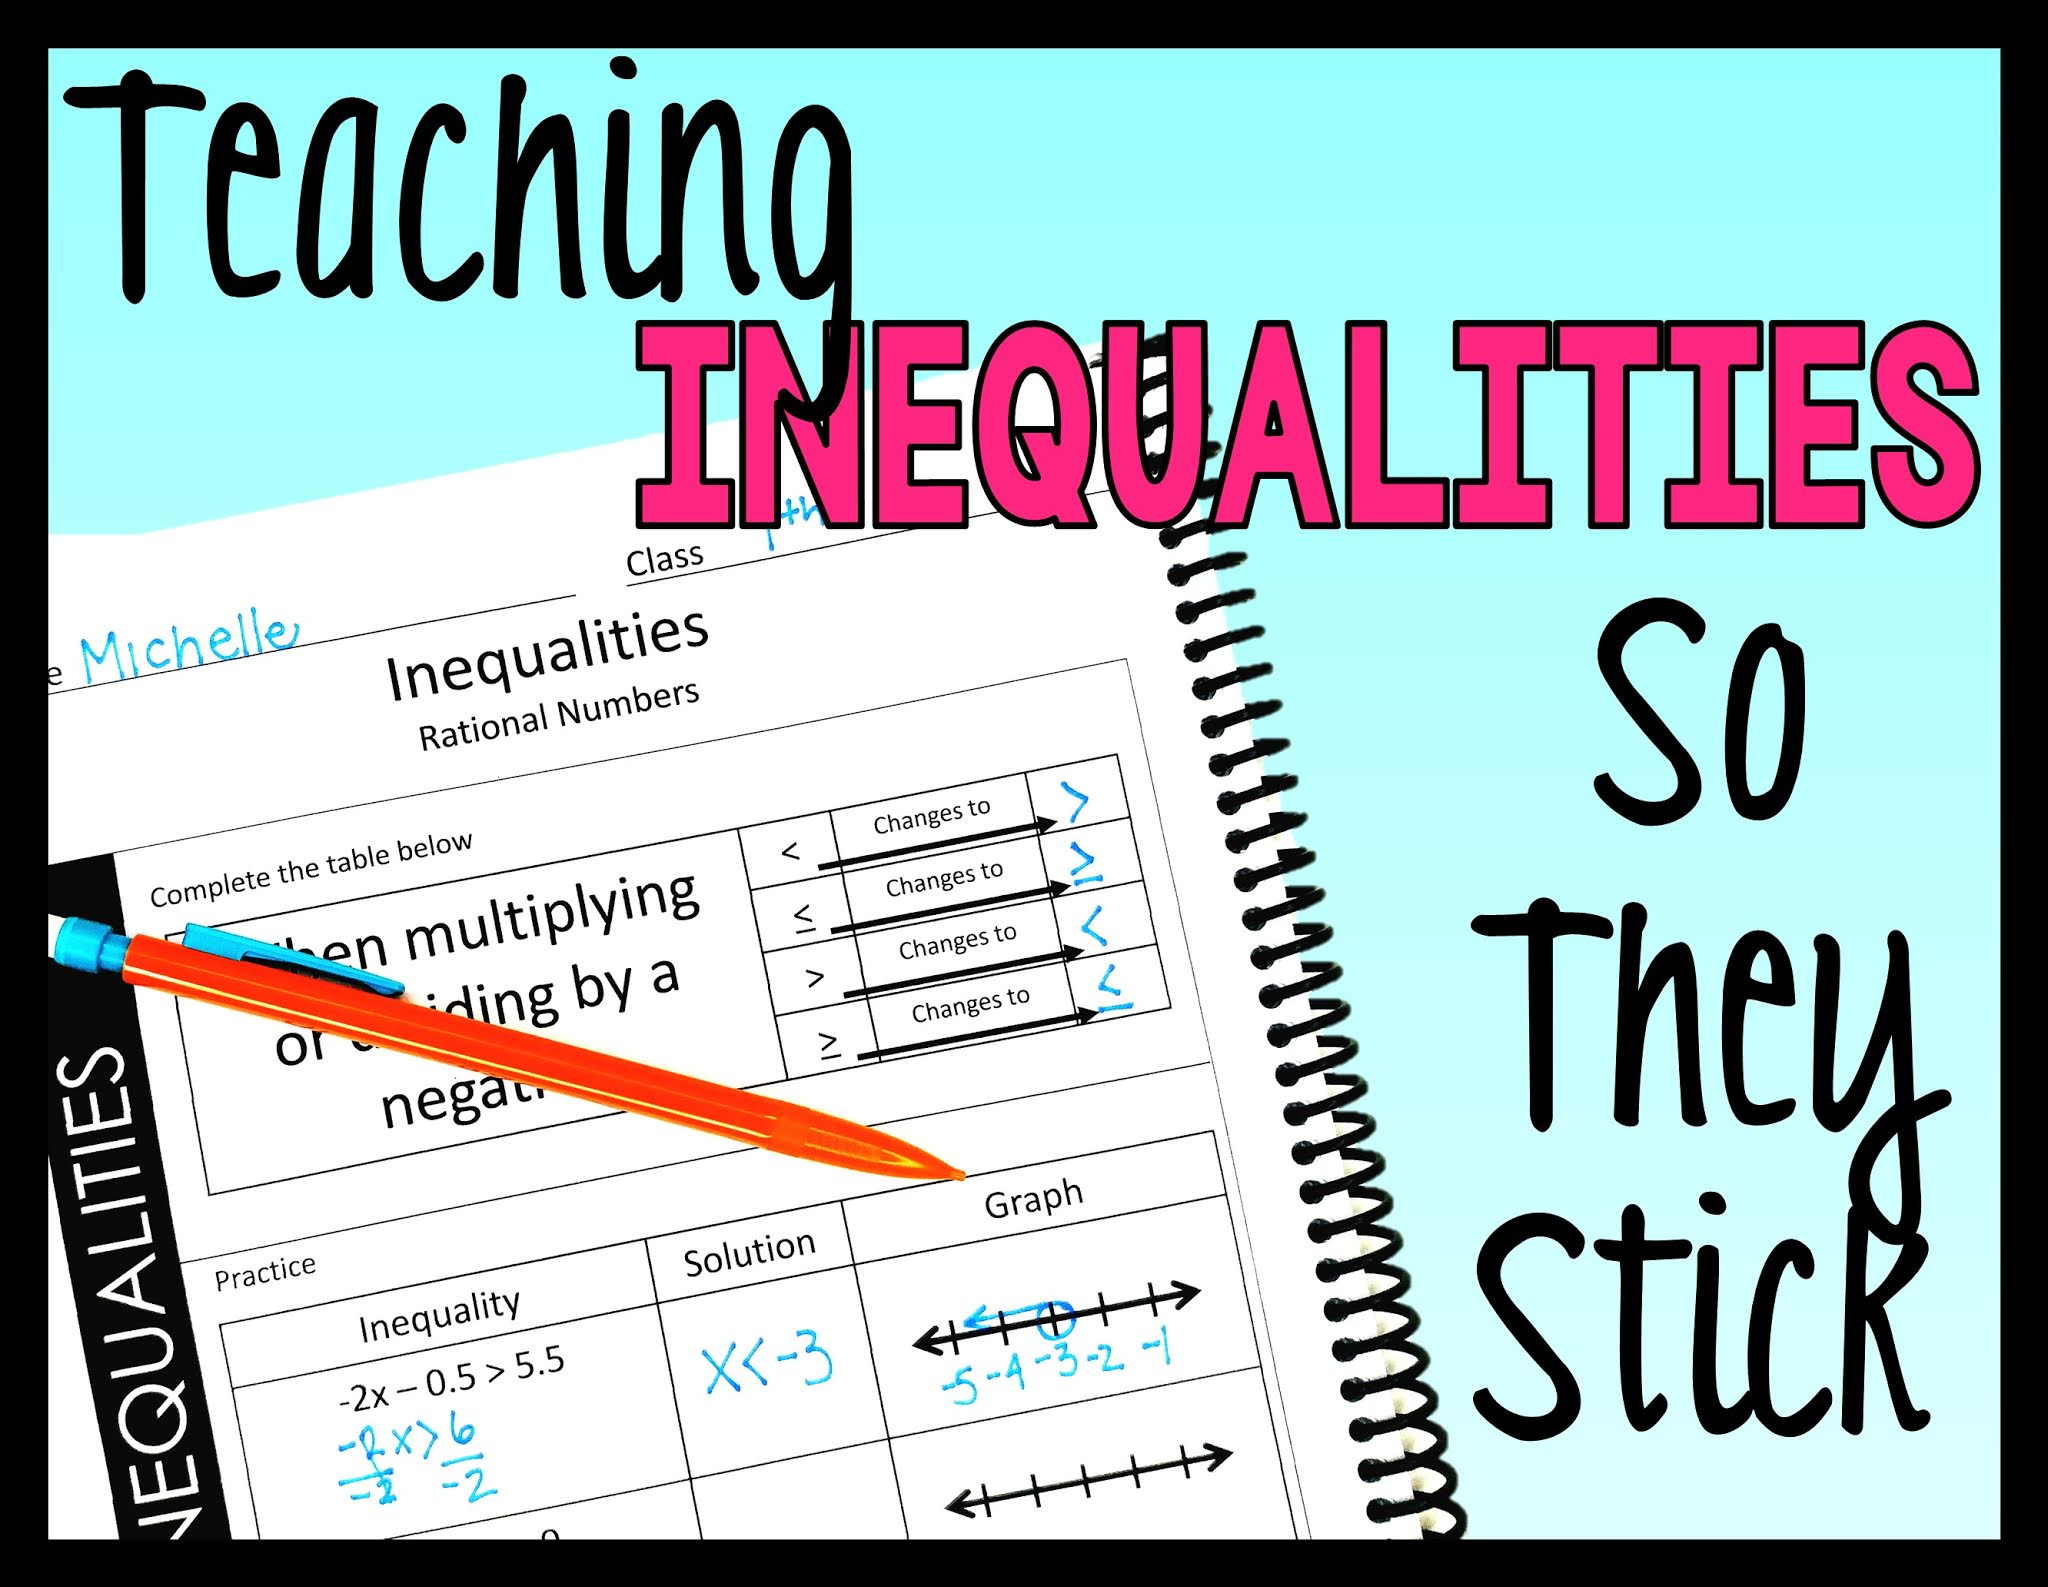 Solving and graphing inequalities notes with pencil